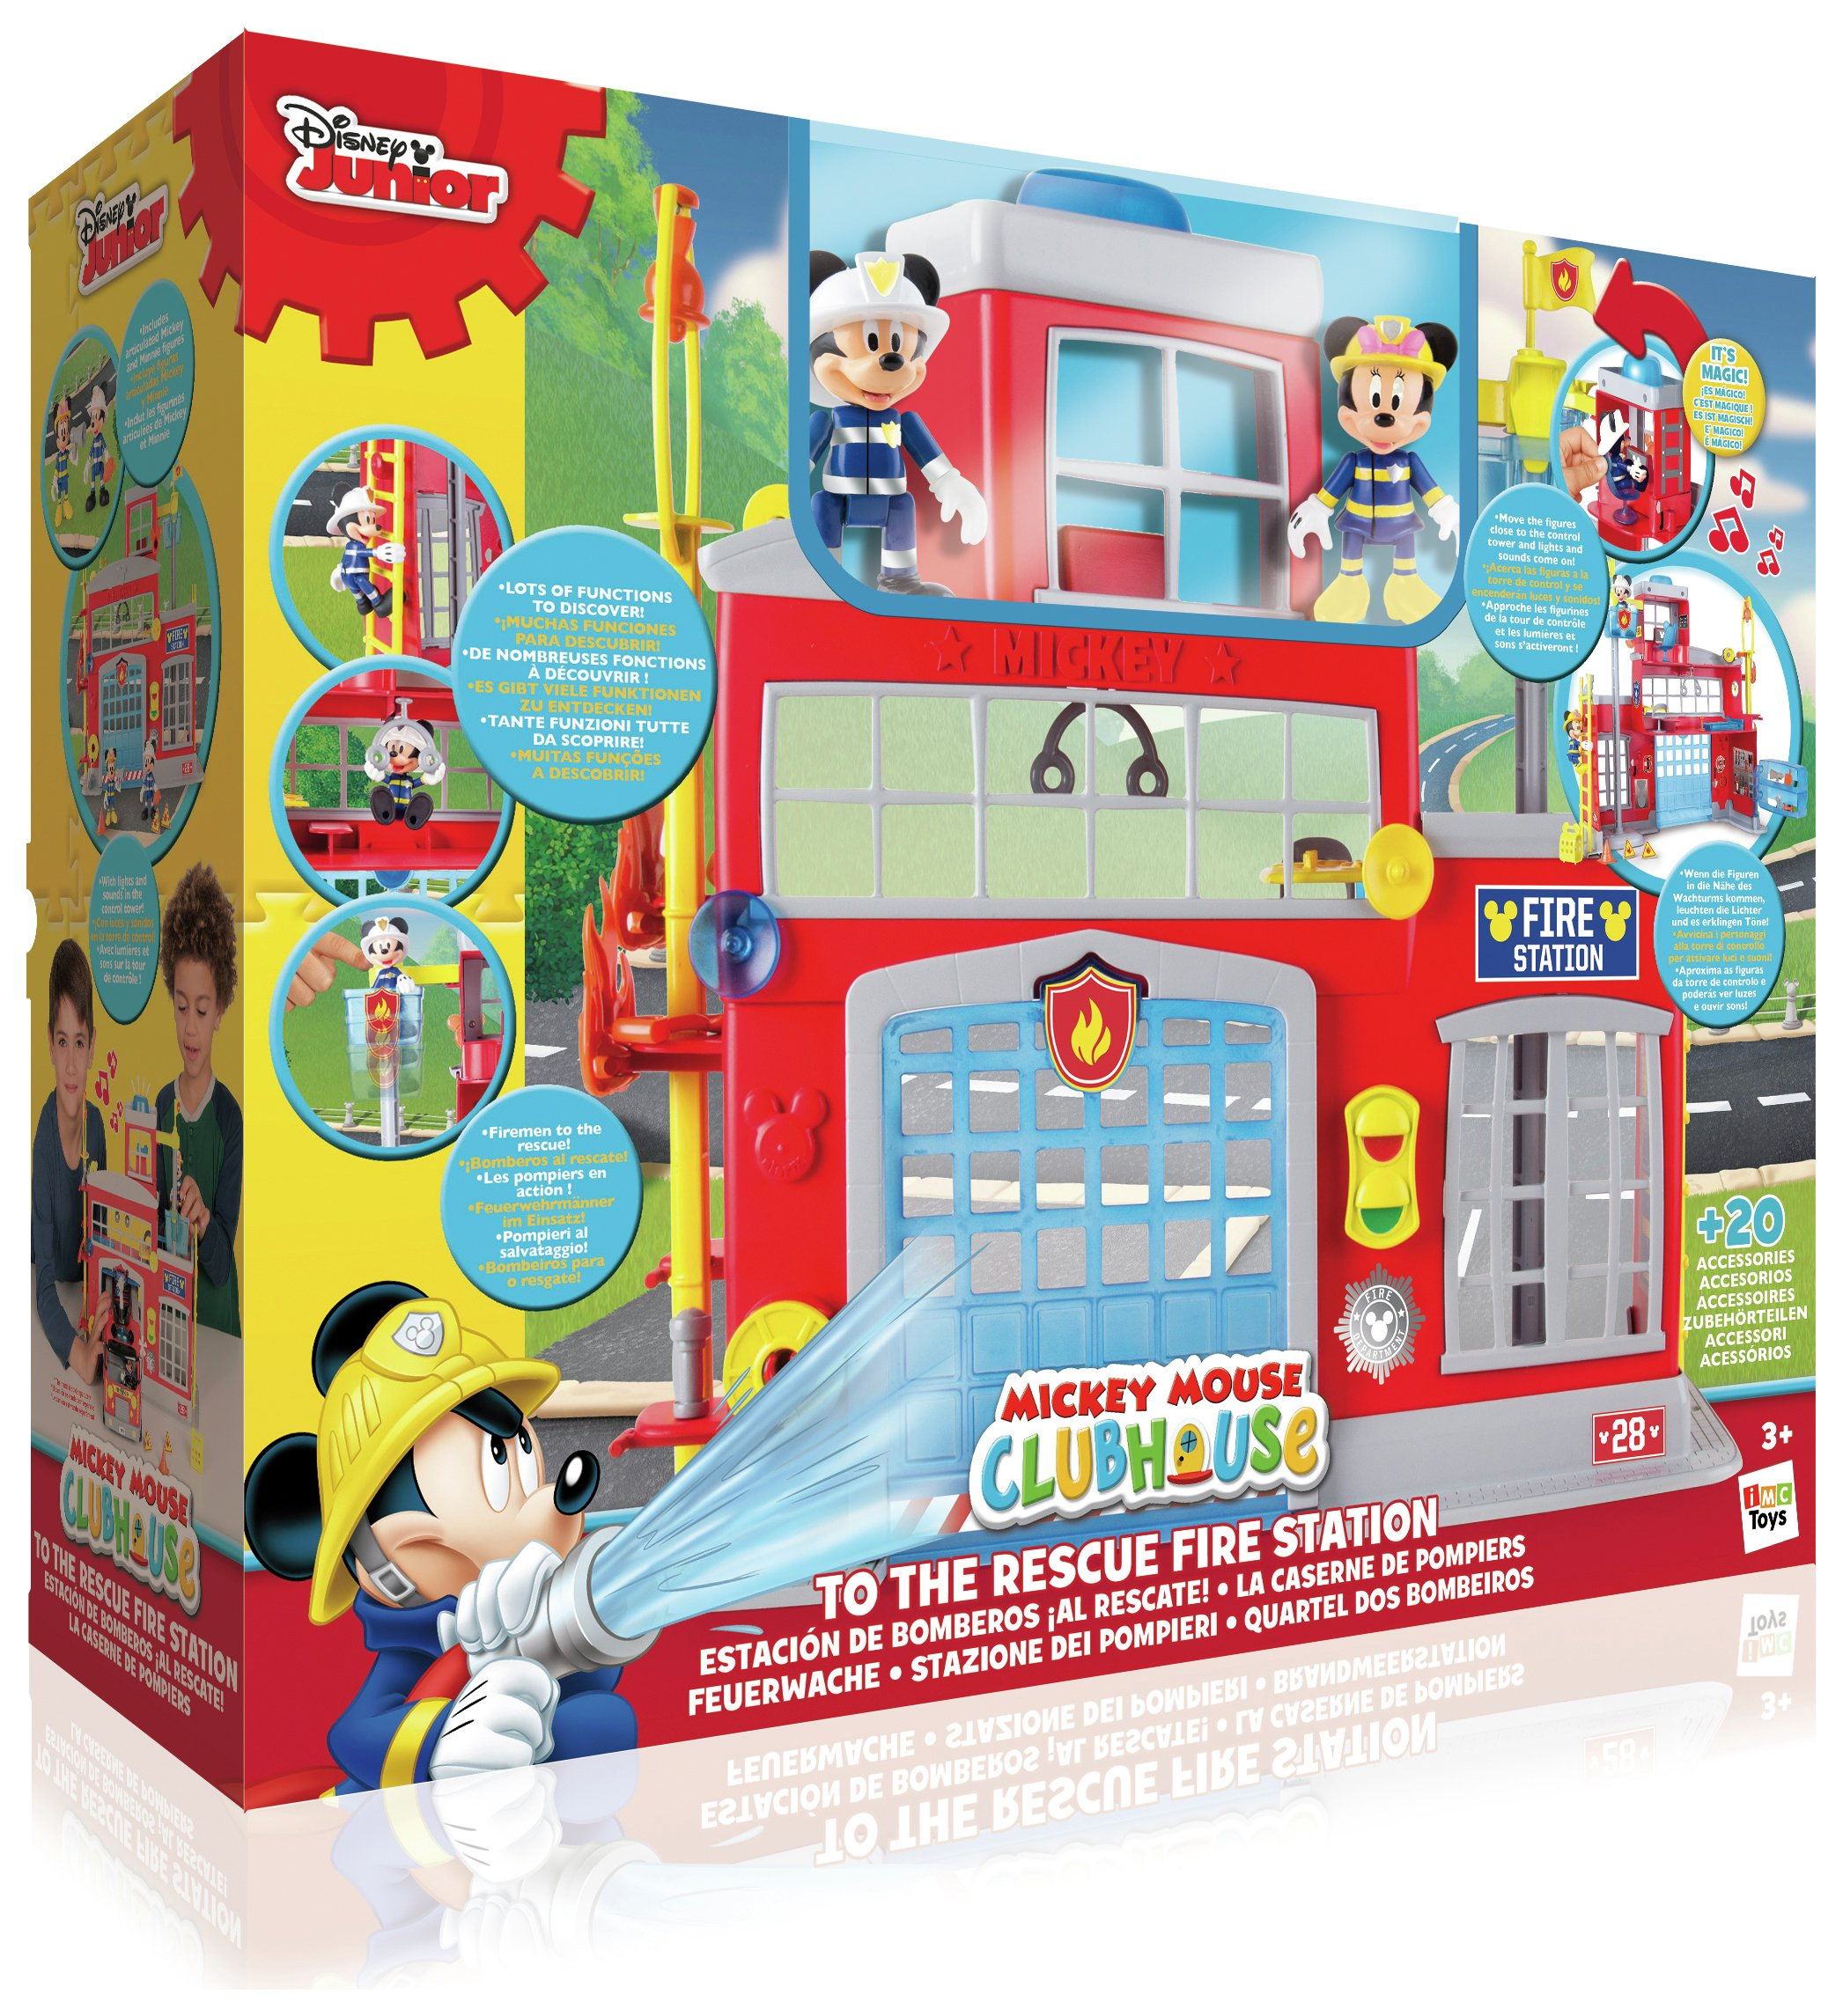 Mickey Mouse Clubhouse To The Rescue Fire Station